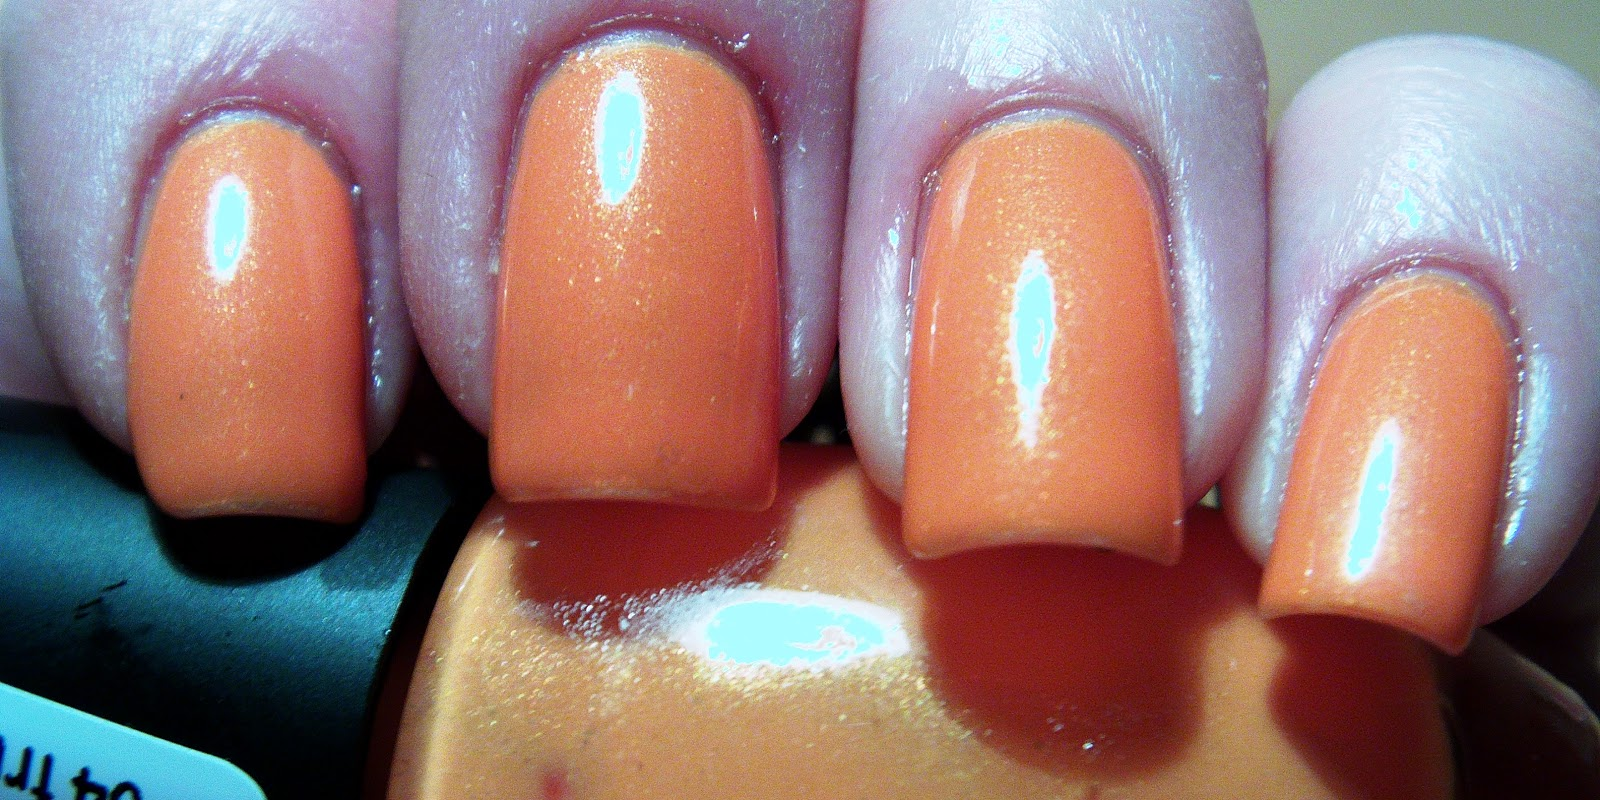 All about nails: October 2010